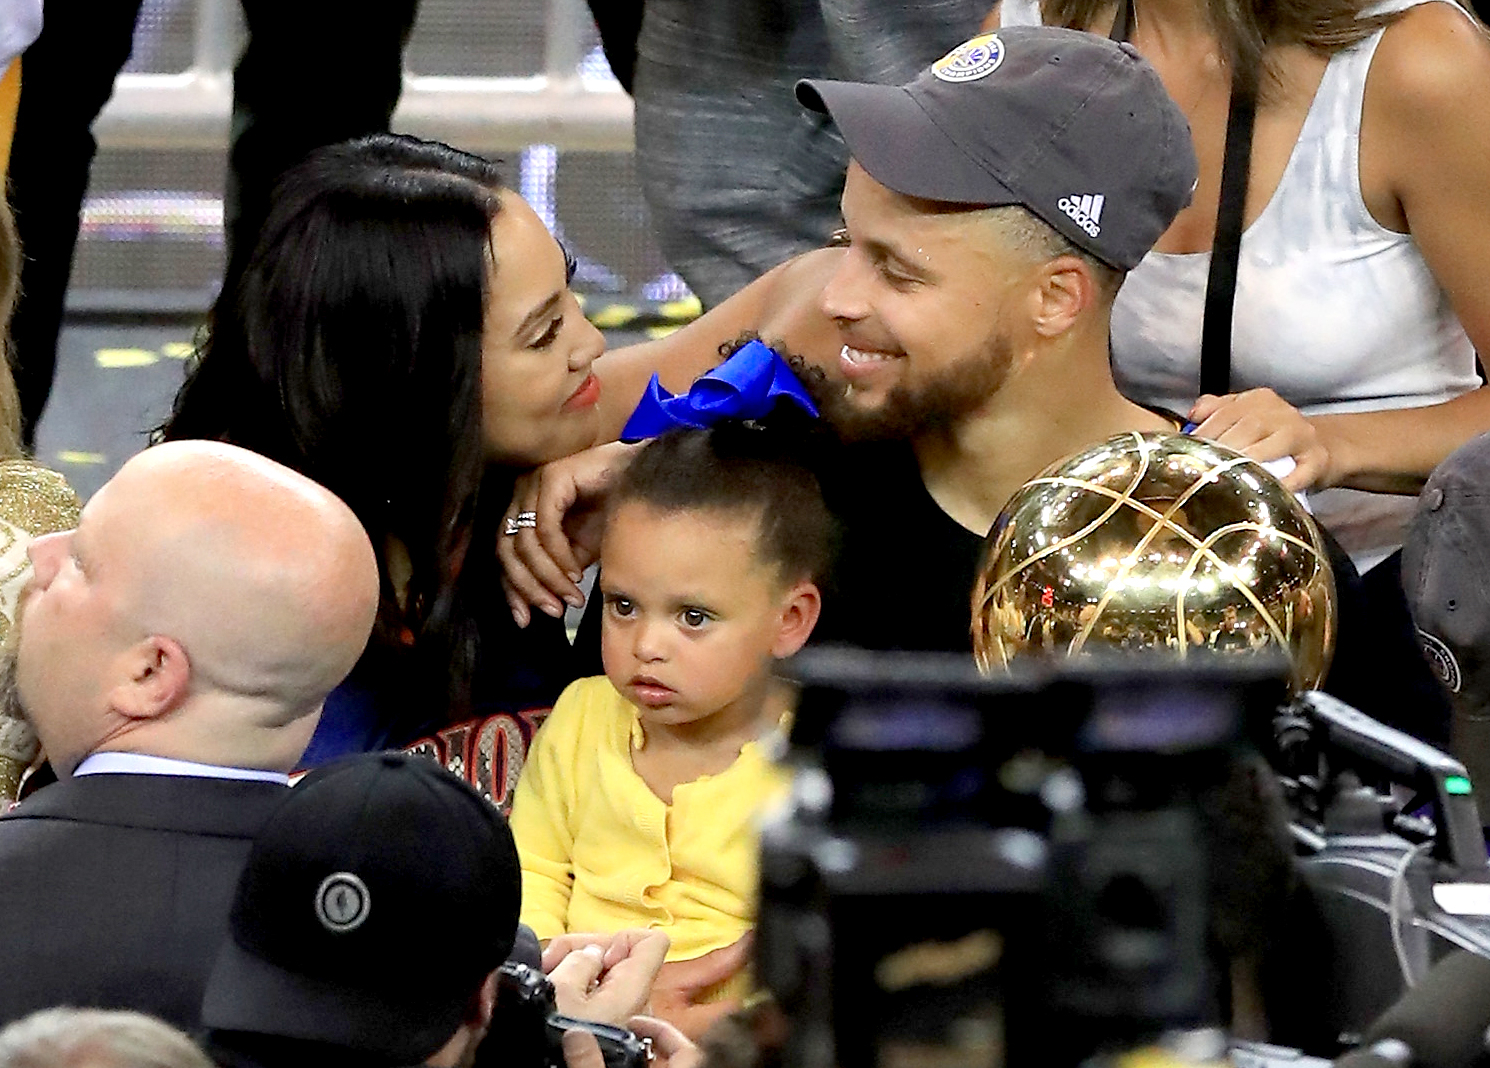 Stephen Curry #30 of the Golden State Warriors celebrates with his wife Ayesha after defeating the Cleveland Cavaliers 129-120 in Game 5 to win the 2017 NBA Finals at ORACLE Arena on June 12, 2017 in Oakland, California.